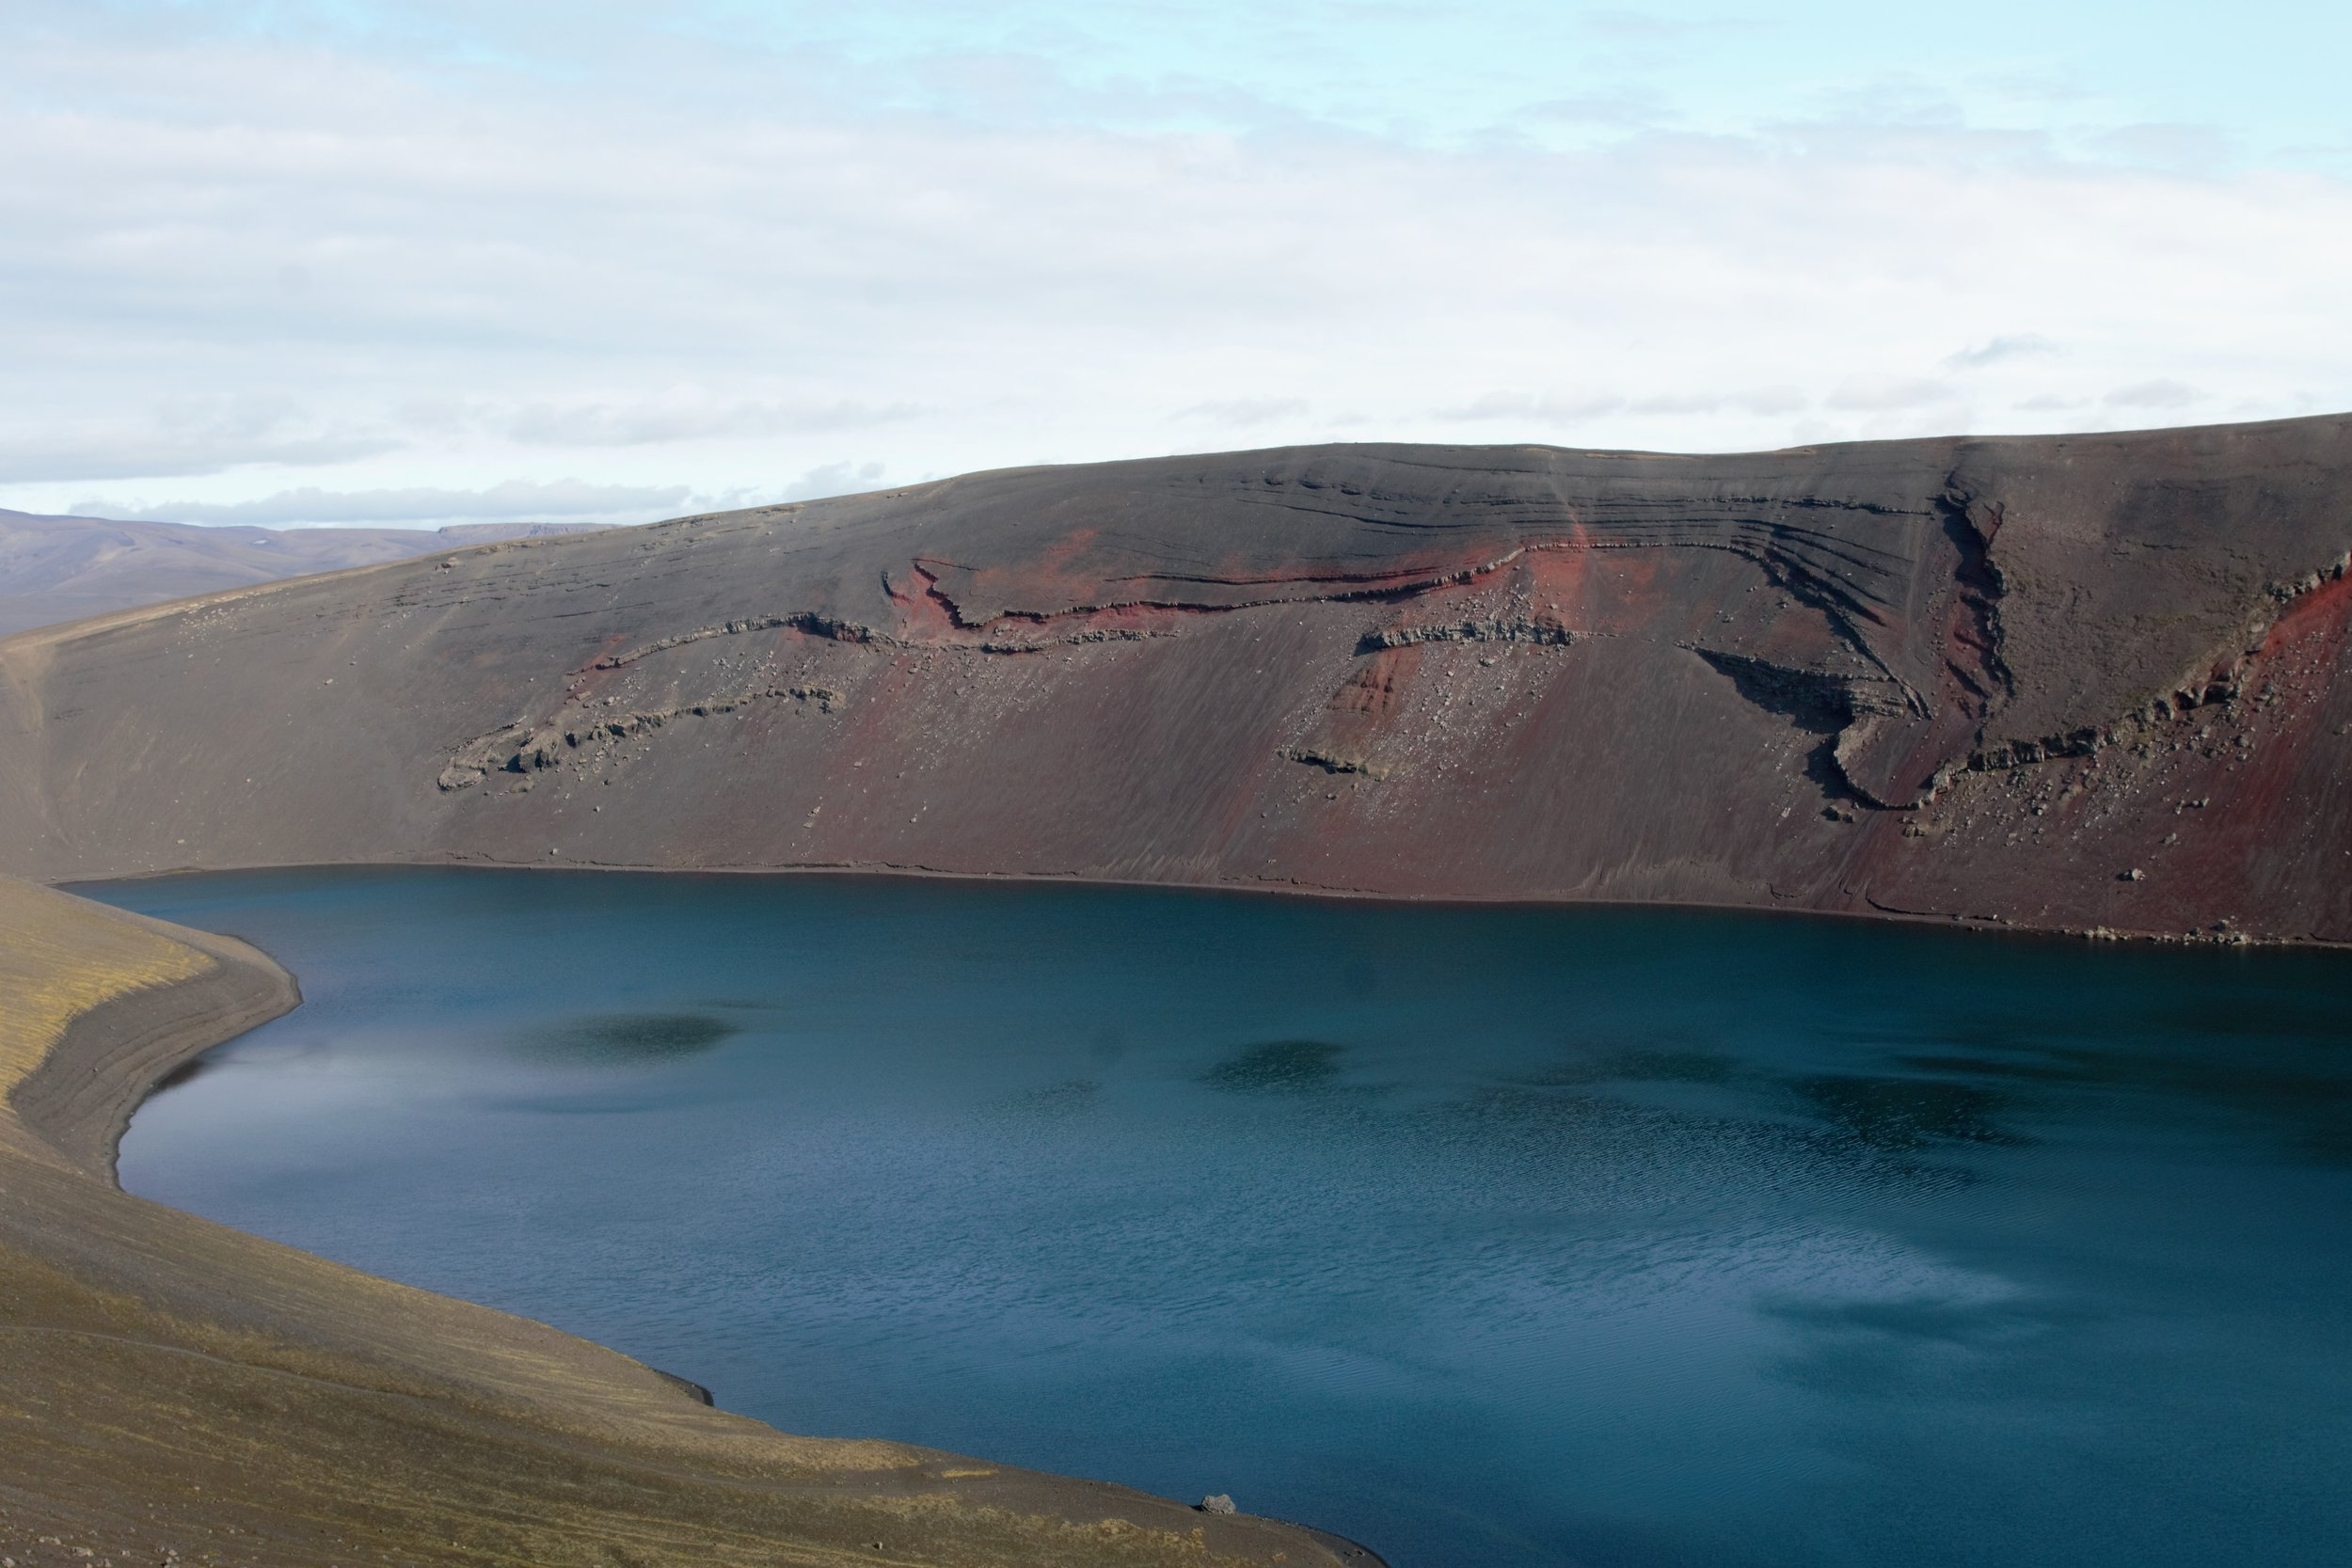 A better shot of the colors of the caldera.